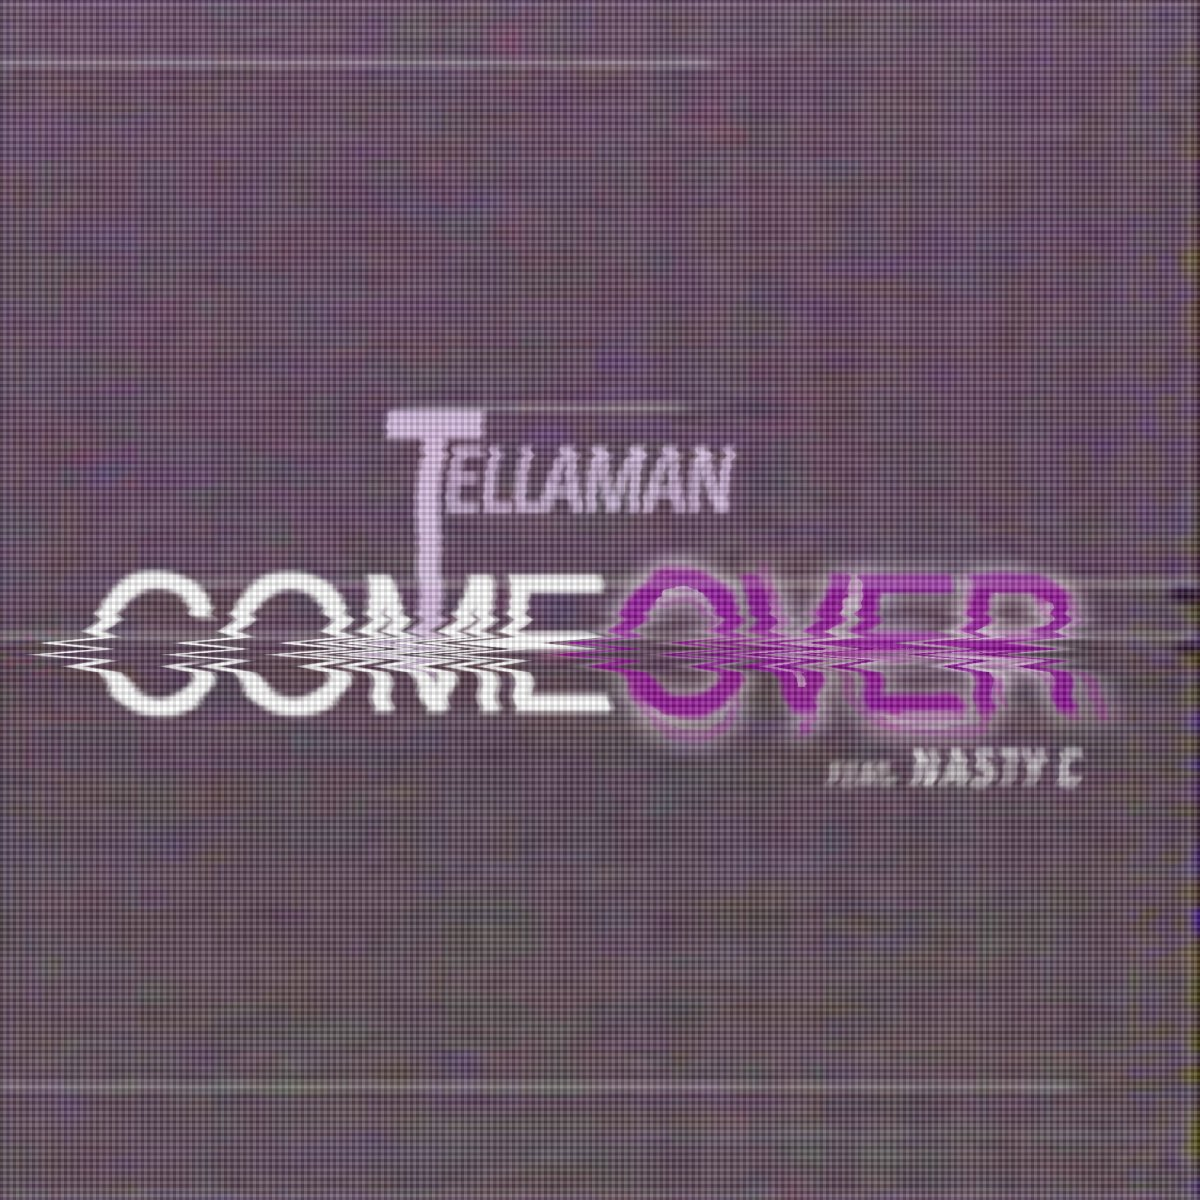 New Release: Tellaman - Come Over [ft Nasty C]